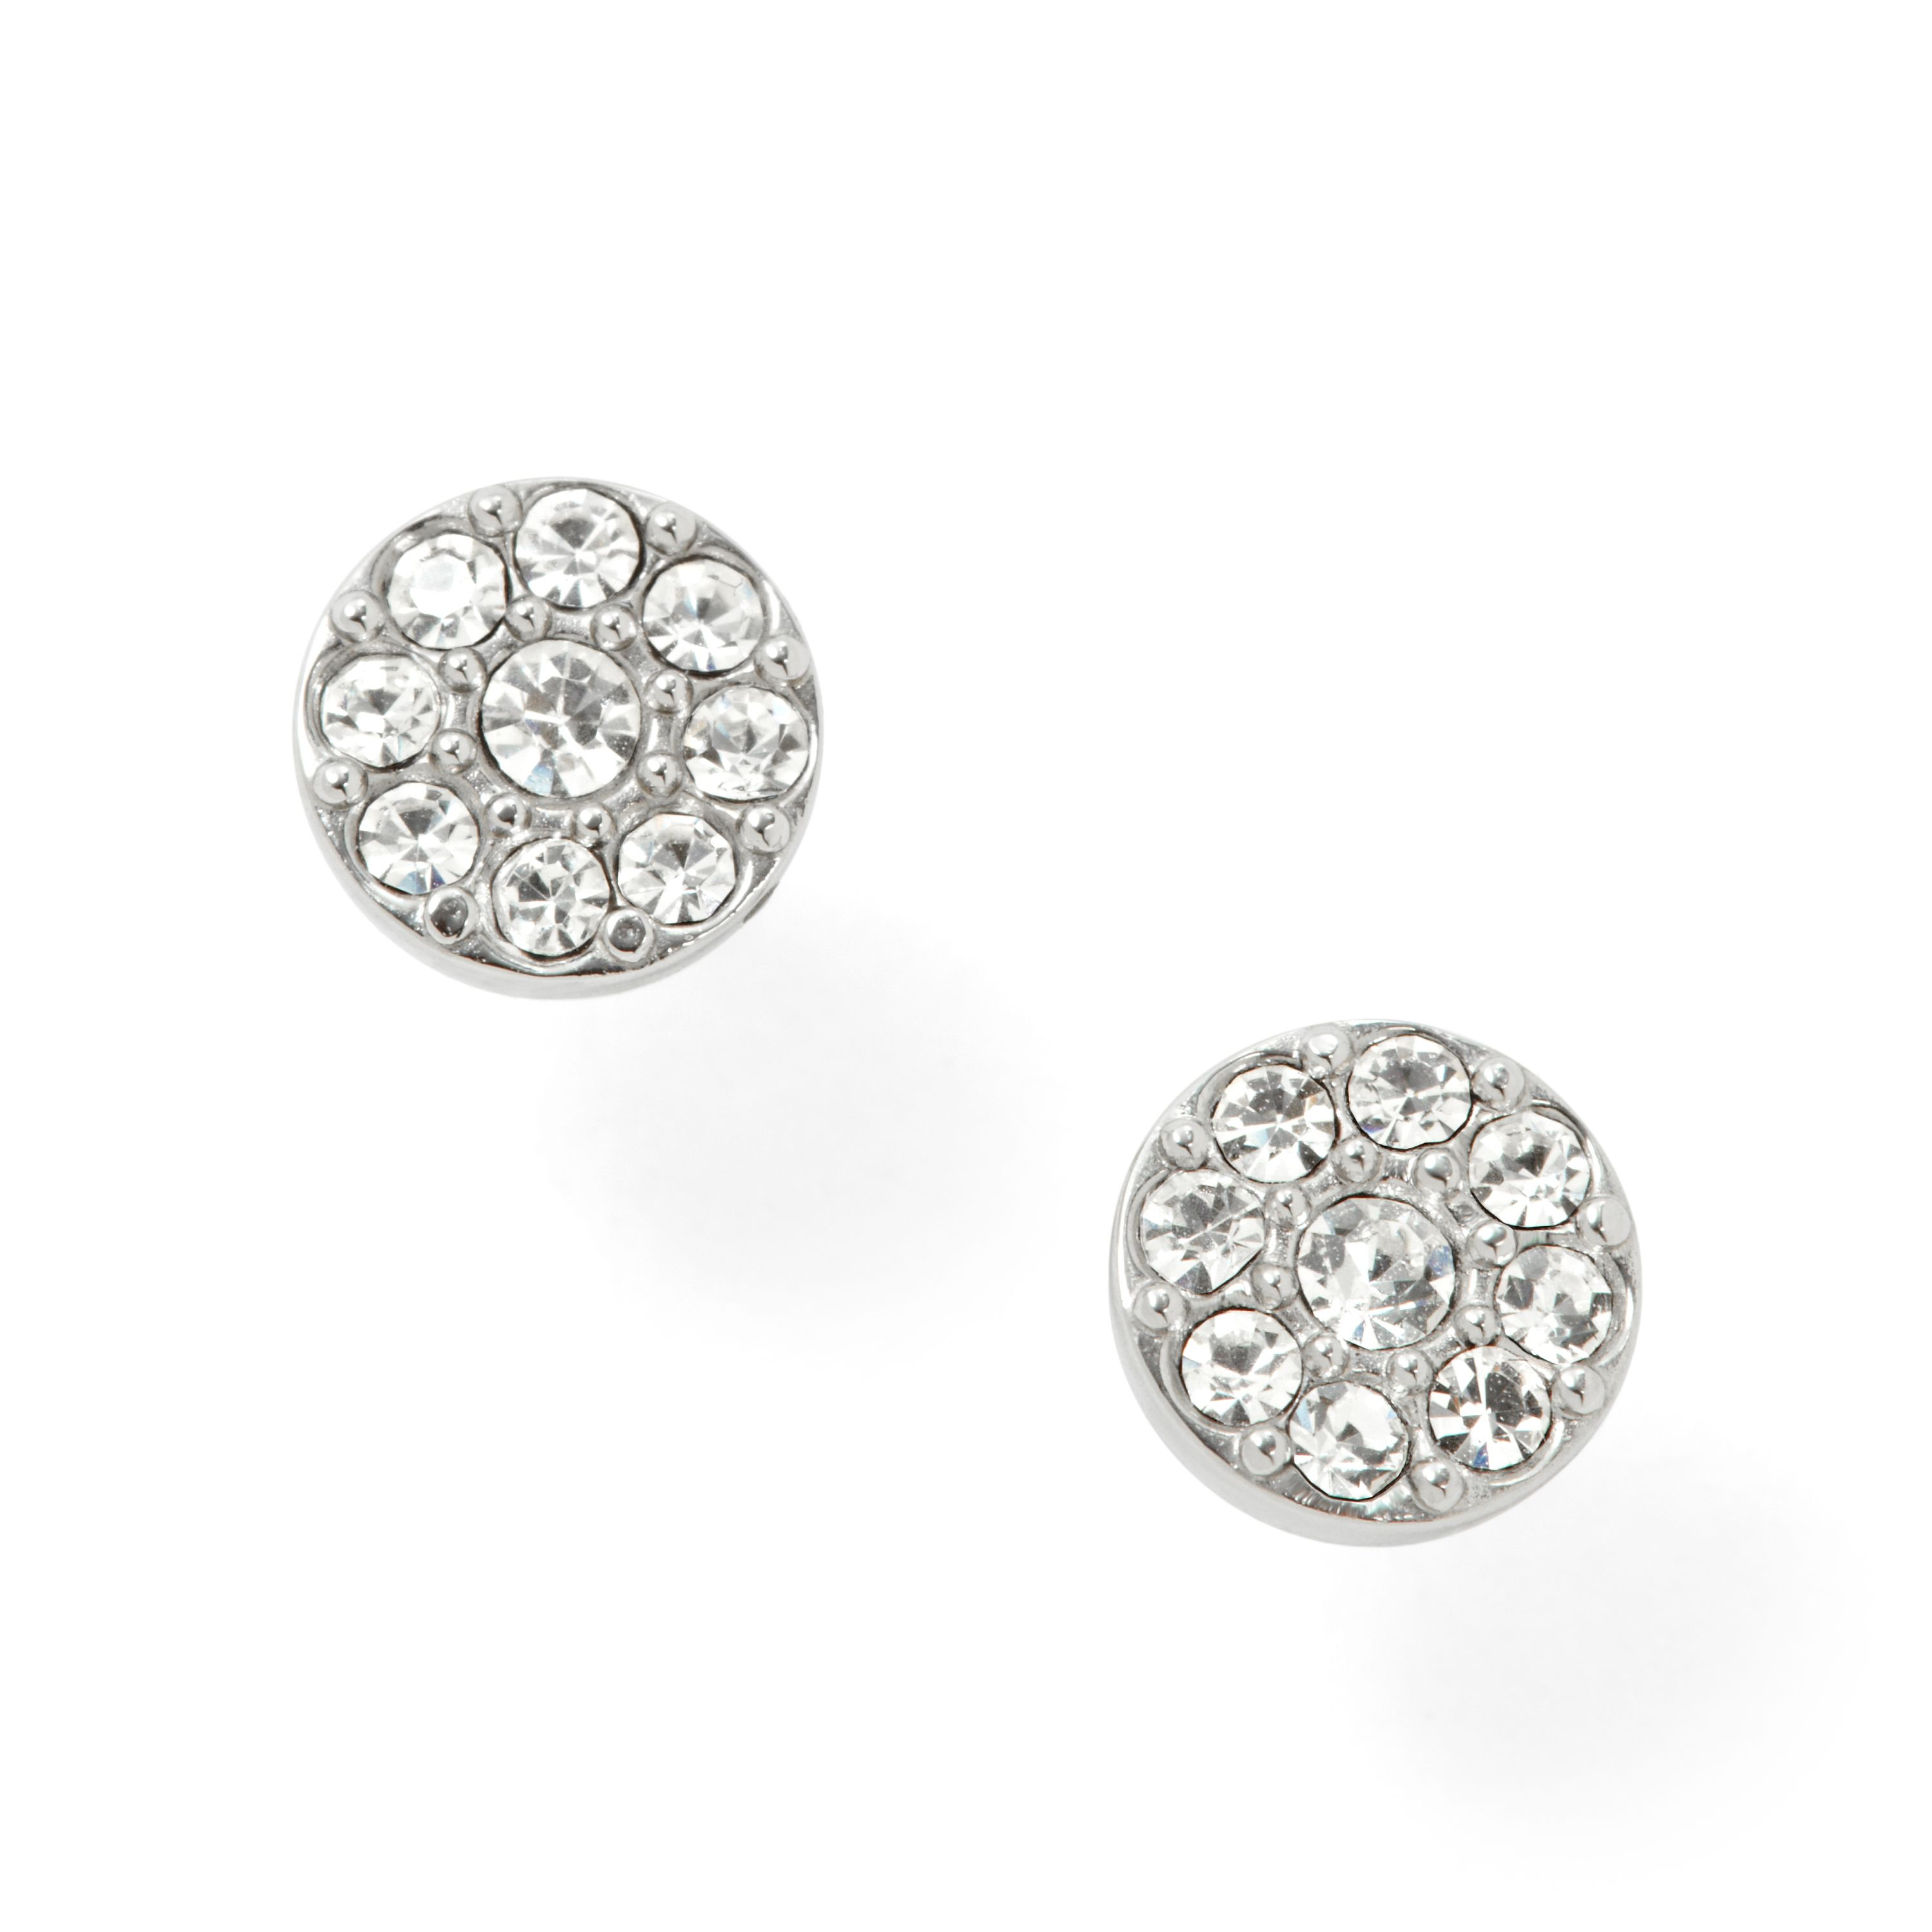 Jf00828040 Ladies silver vintage glitz earrings